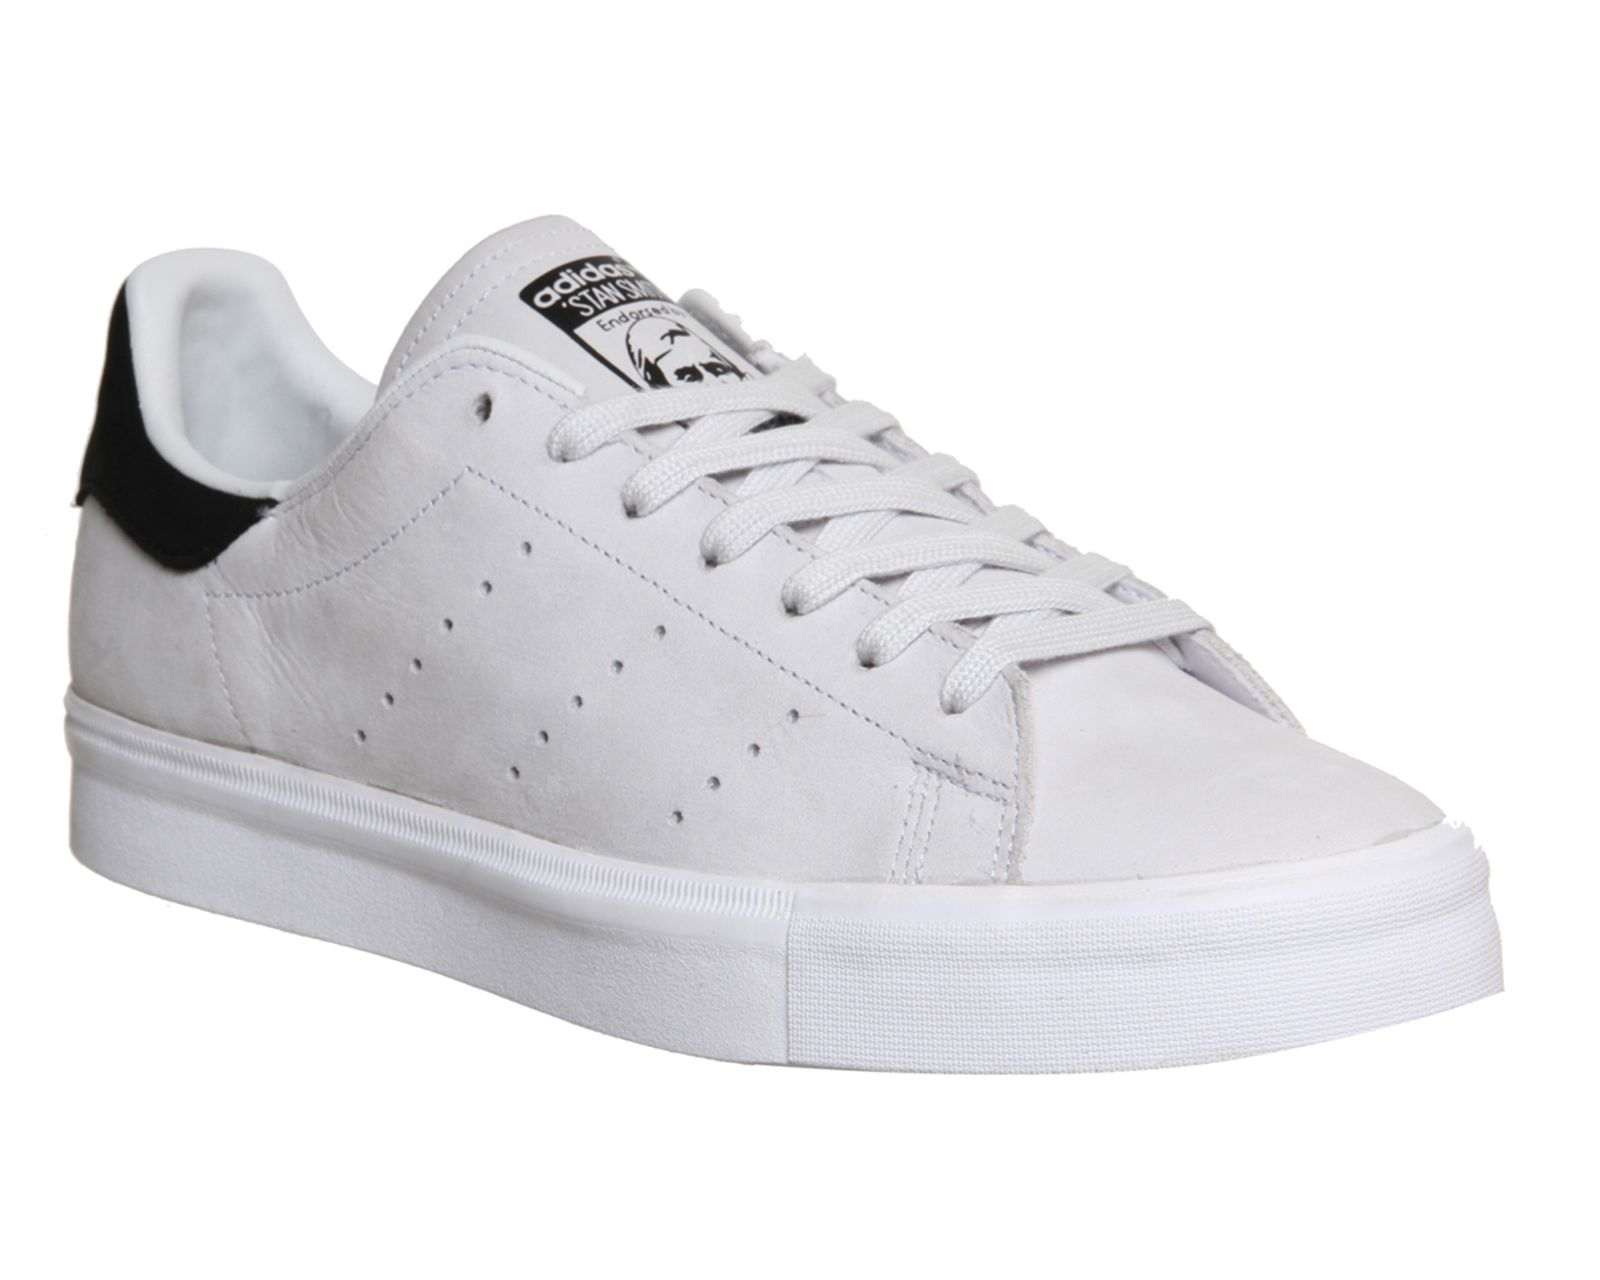 stan smith mens vulc